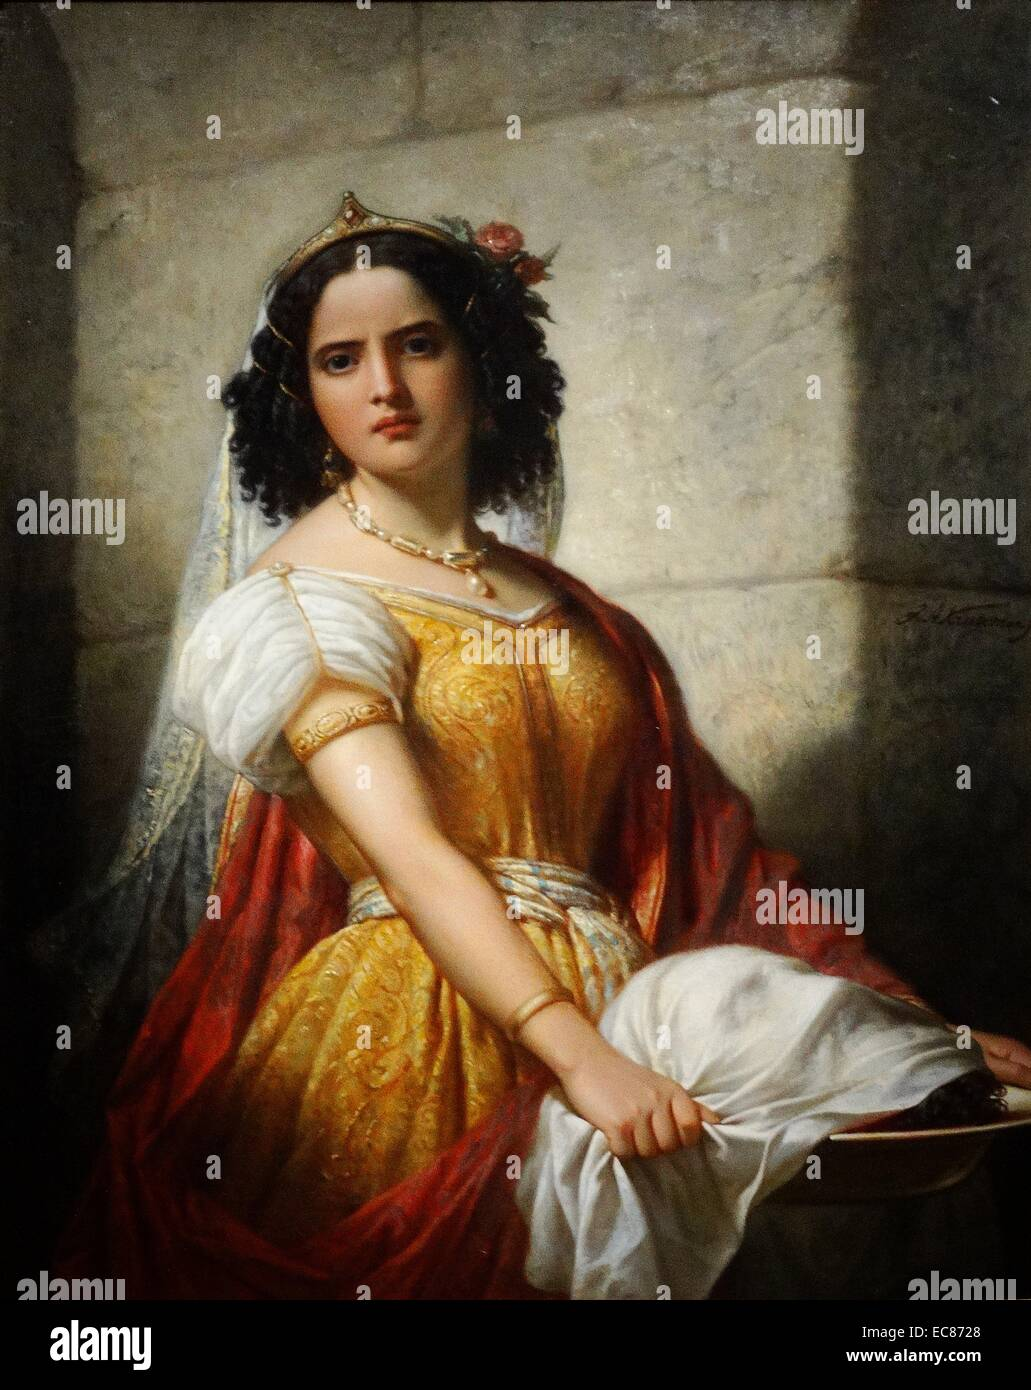 Portrait of Salome with the Head of John the Baptist - Stock Image